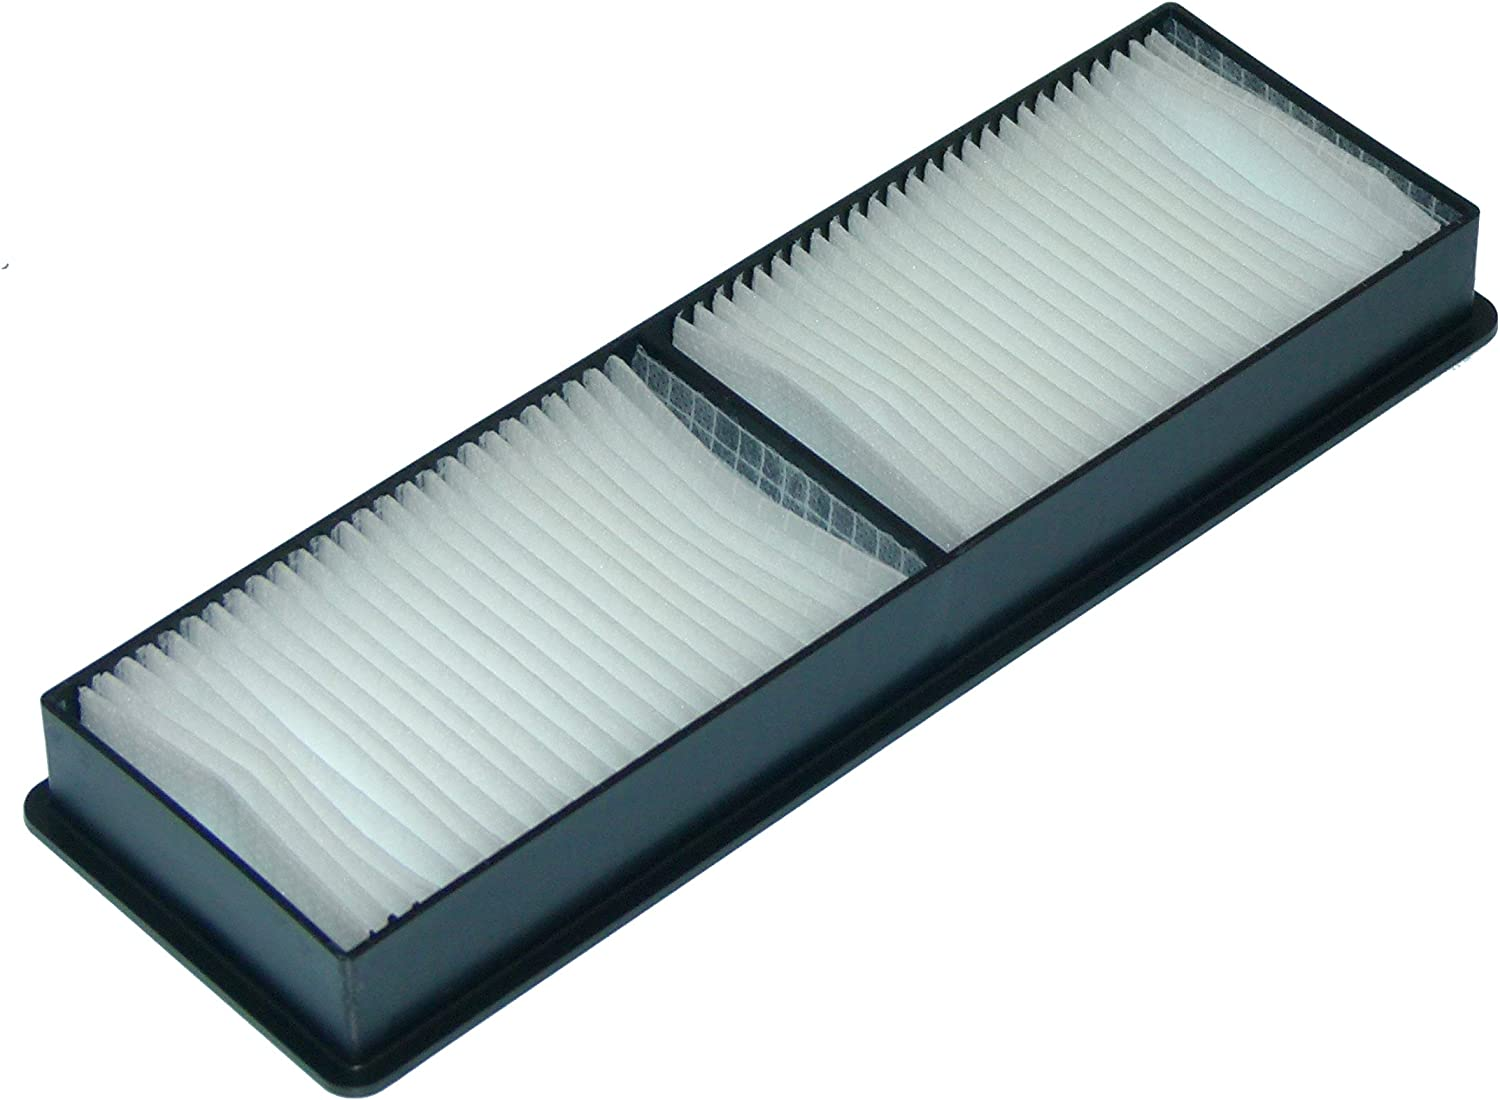 NEW OEM Epson Projector Air Filter For Epson Pro G7905U Pro G7500U Pro G7805